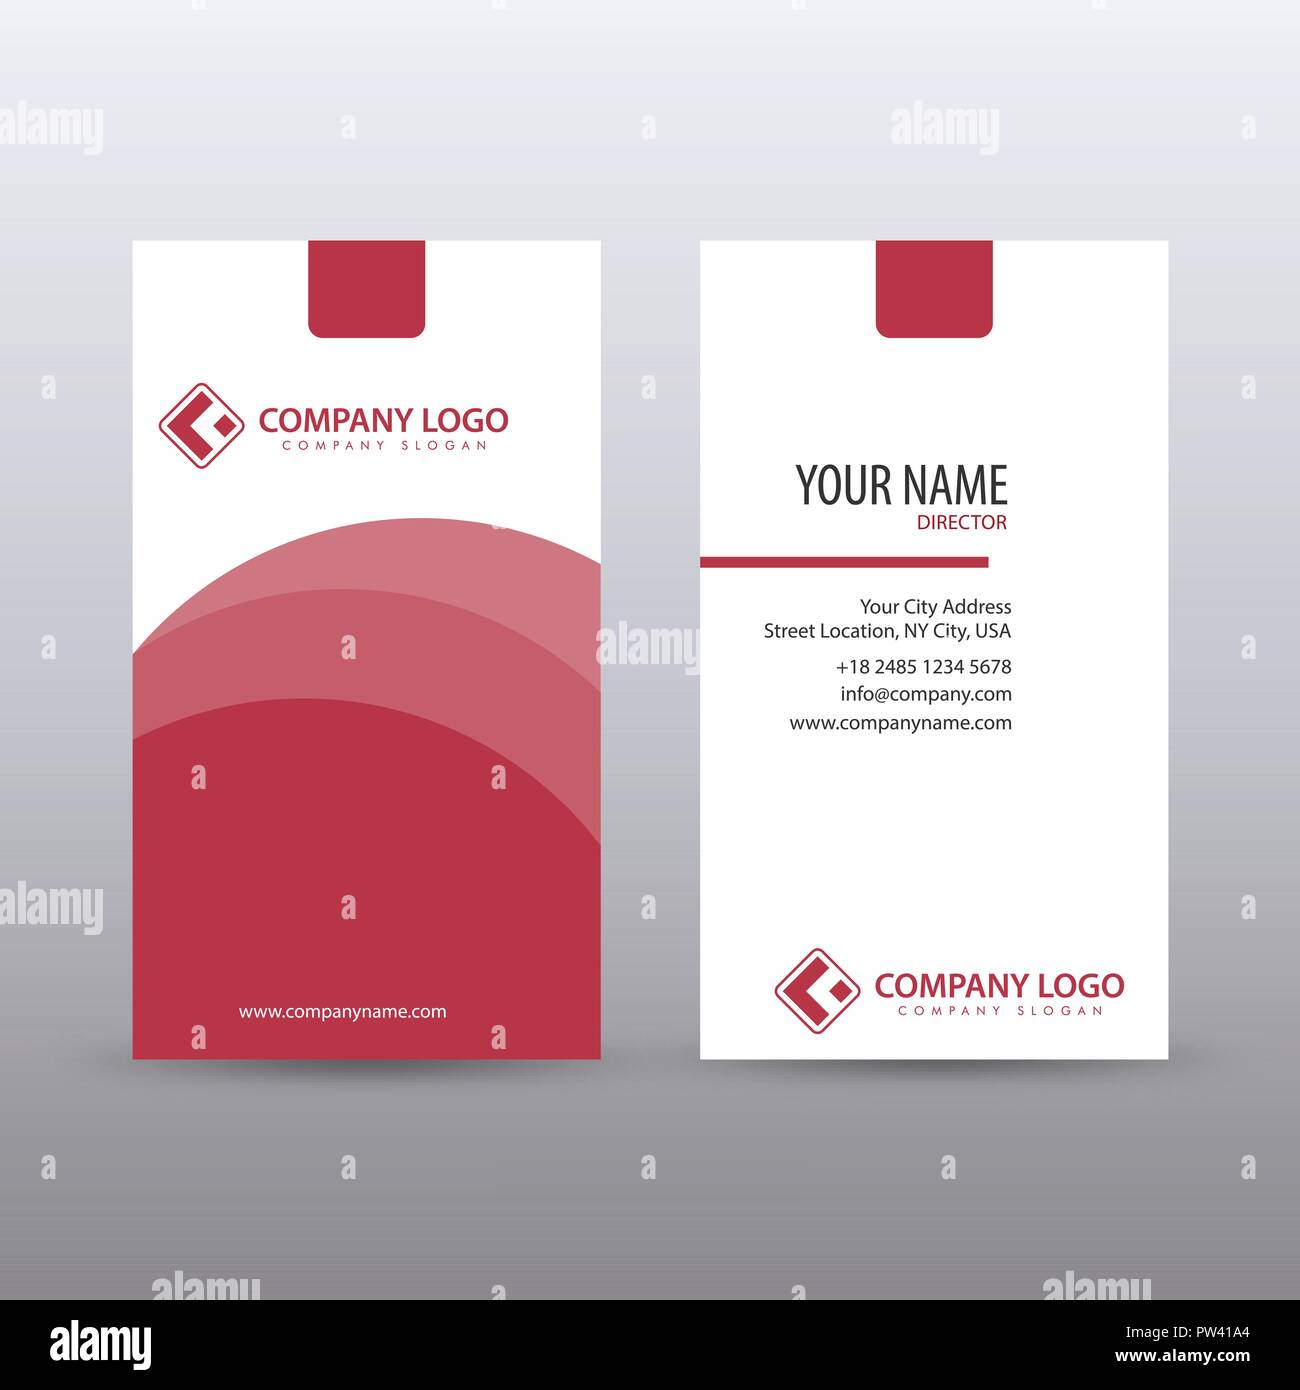 Modern Creative Vertical Clean Business Card Template With Red Color